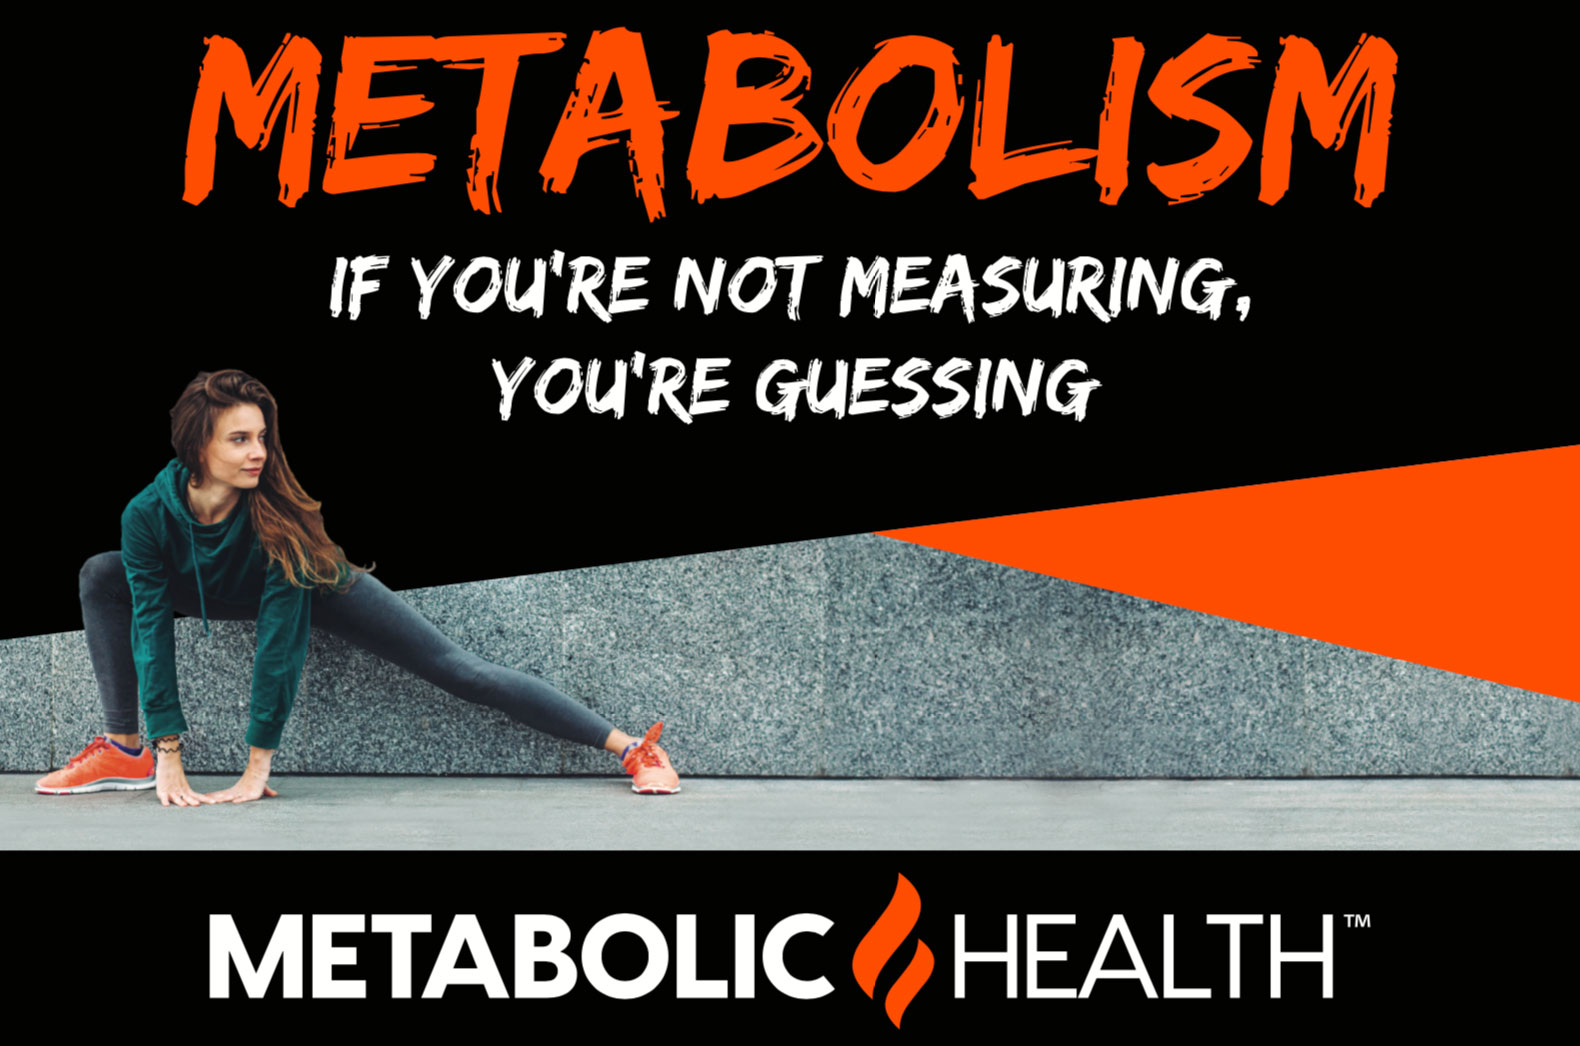 Metabolic Health of Saint Cloud, MN - Portable Metabolic Testing